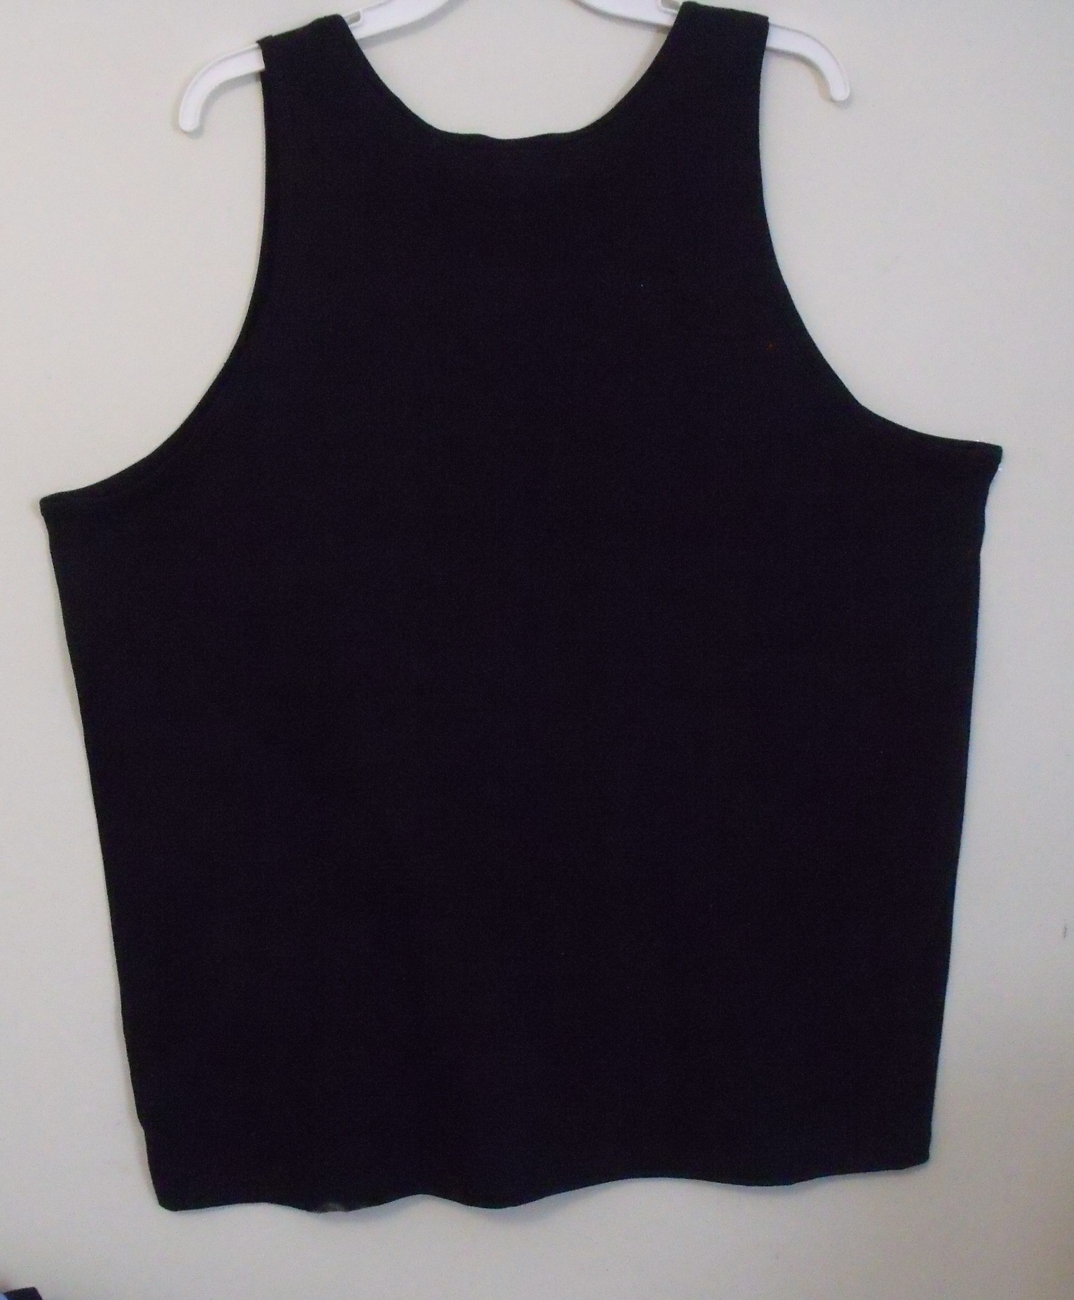 Mens Gildan Black NWOT Sleeveless Tank Top Size 2XL